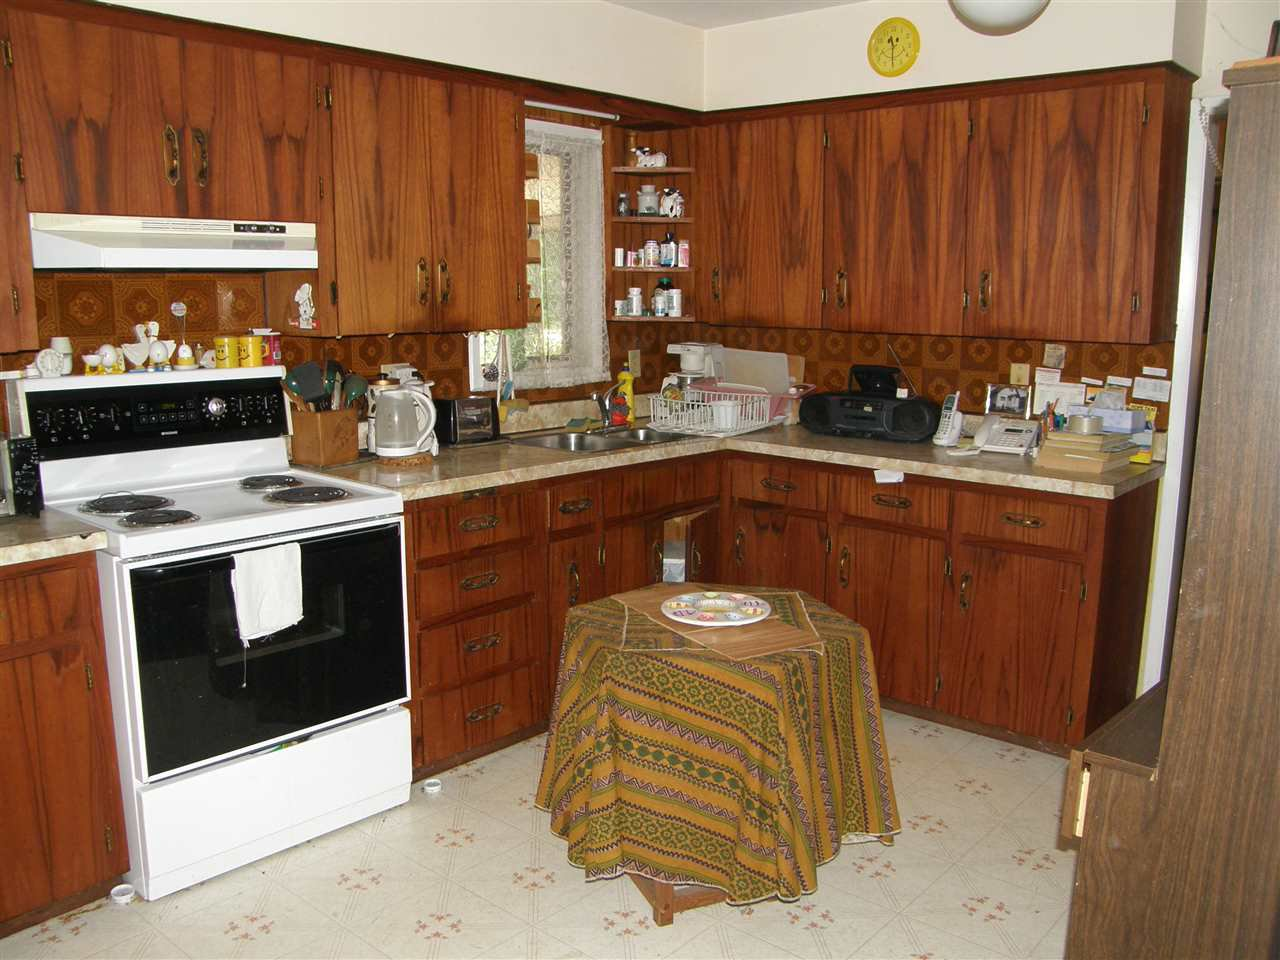 Photo 4: Photos: 539 3RD Avenue in Hope: Hope Center House for sale : MLS®# R2446429